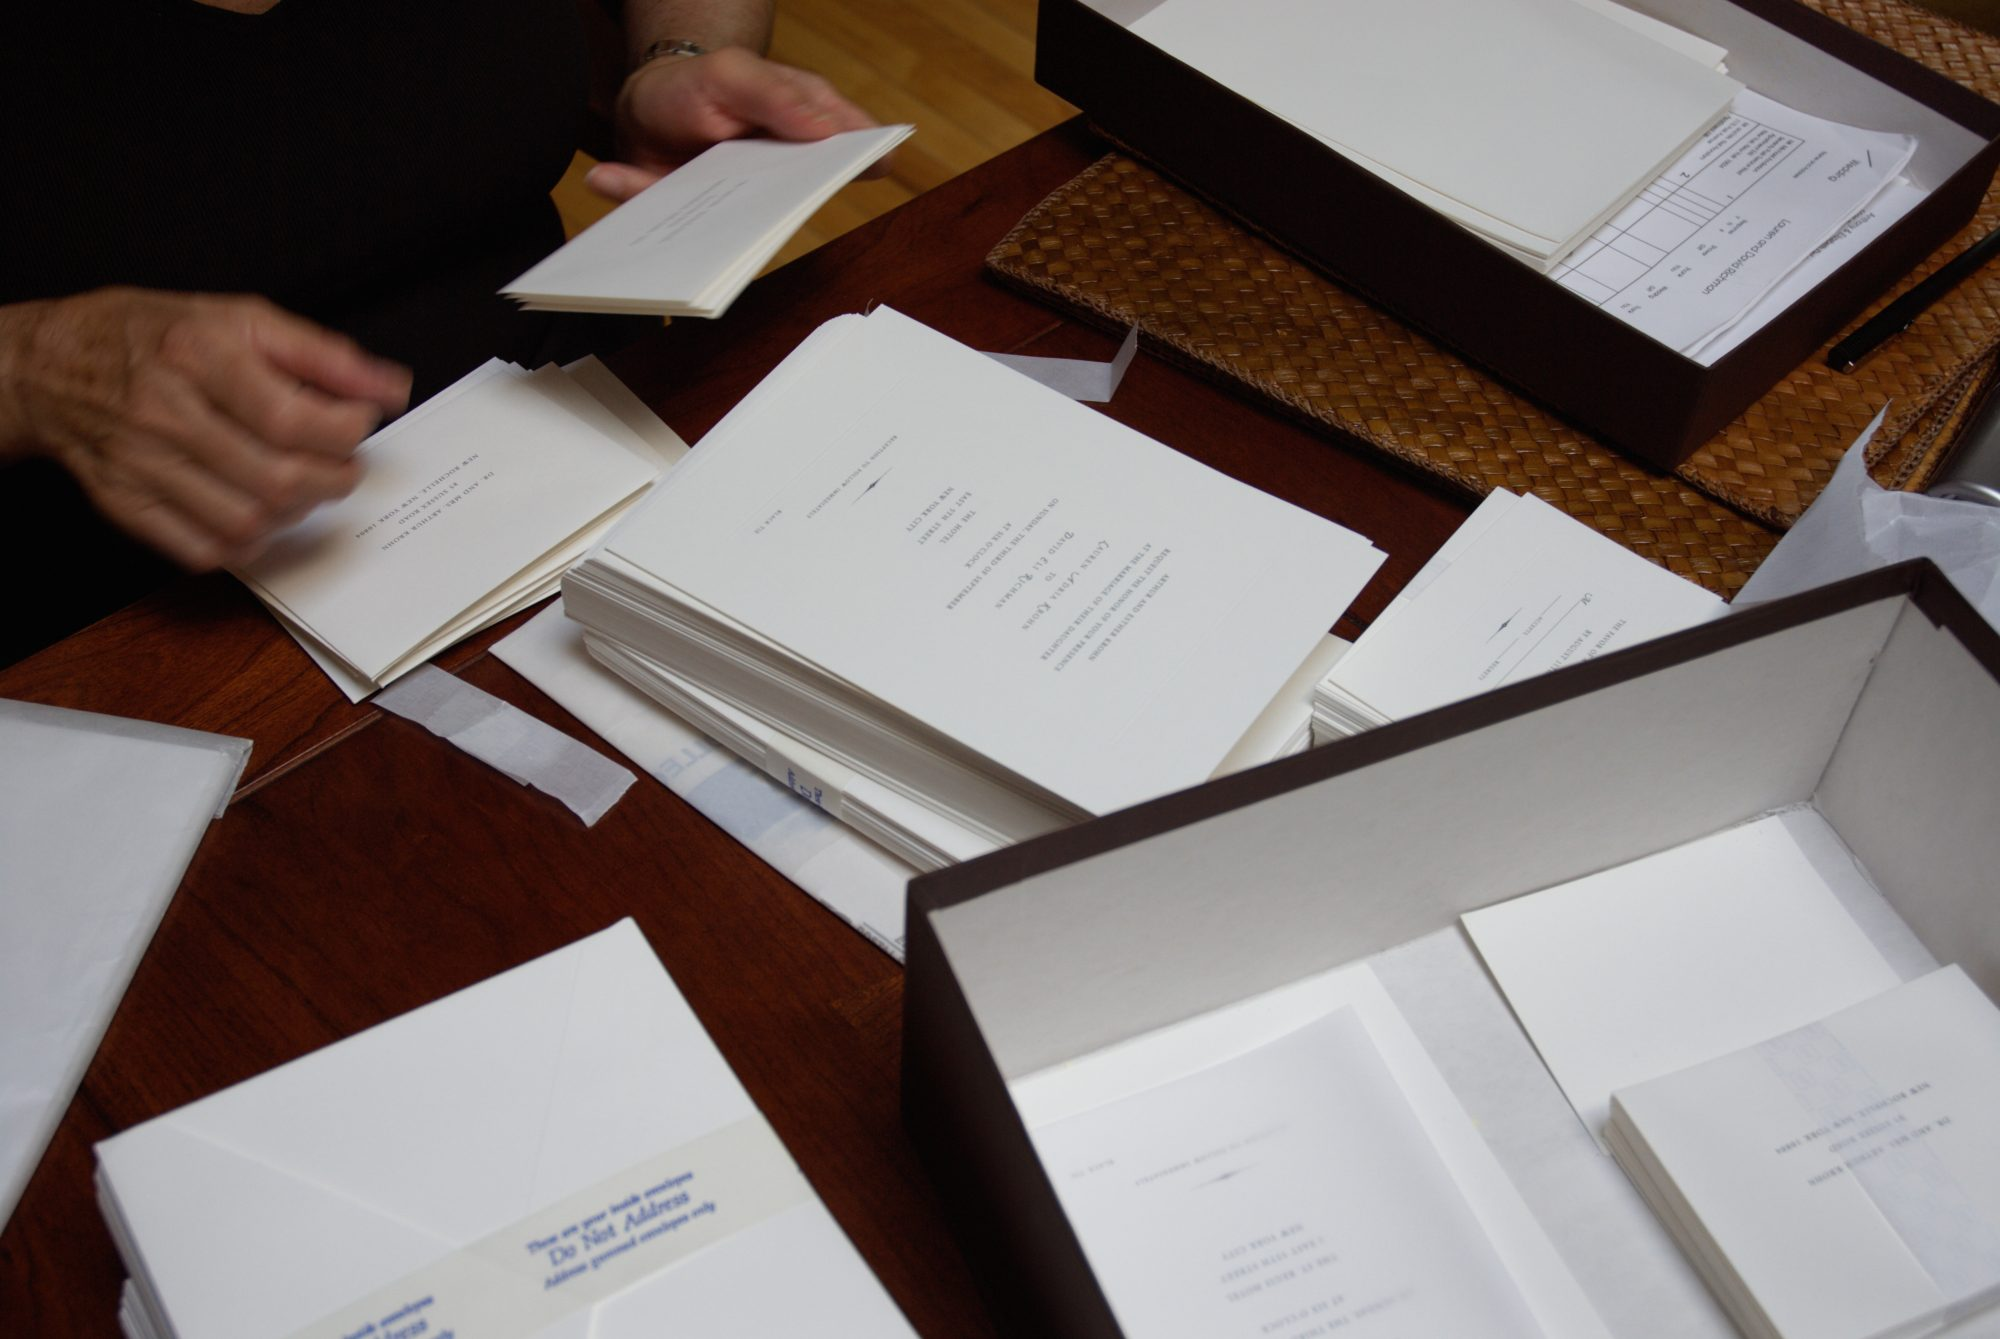 When You Put Your Return Address On the Back of Wedding Invitations, You Run The Risk of Receiving Them Back